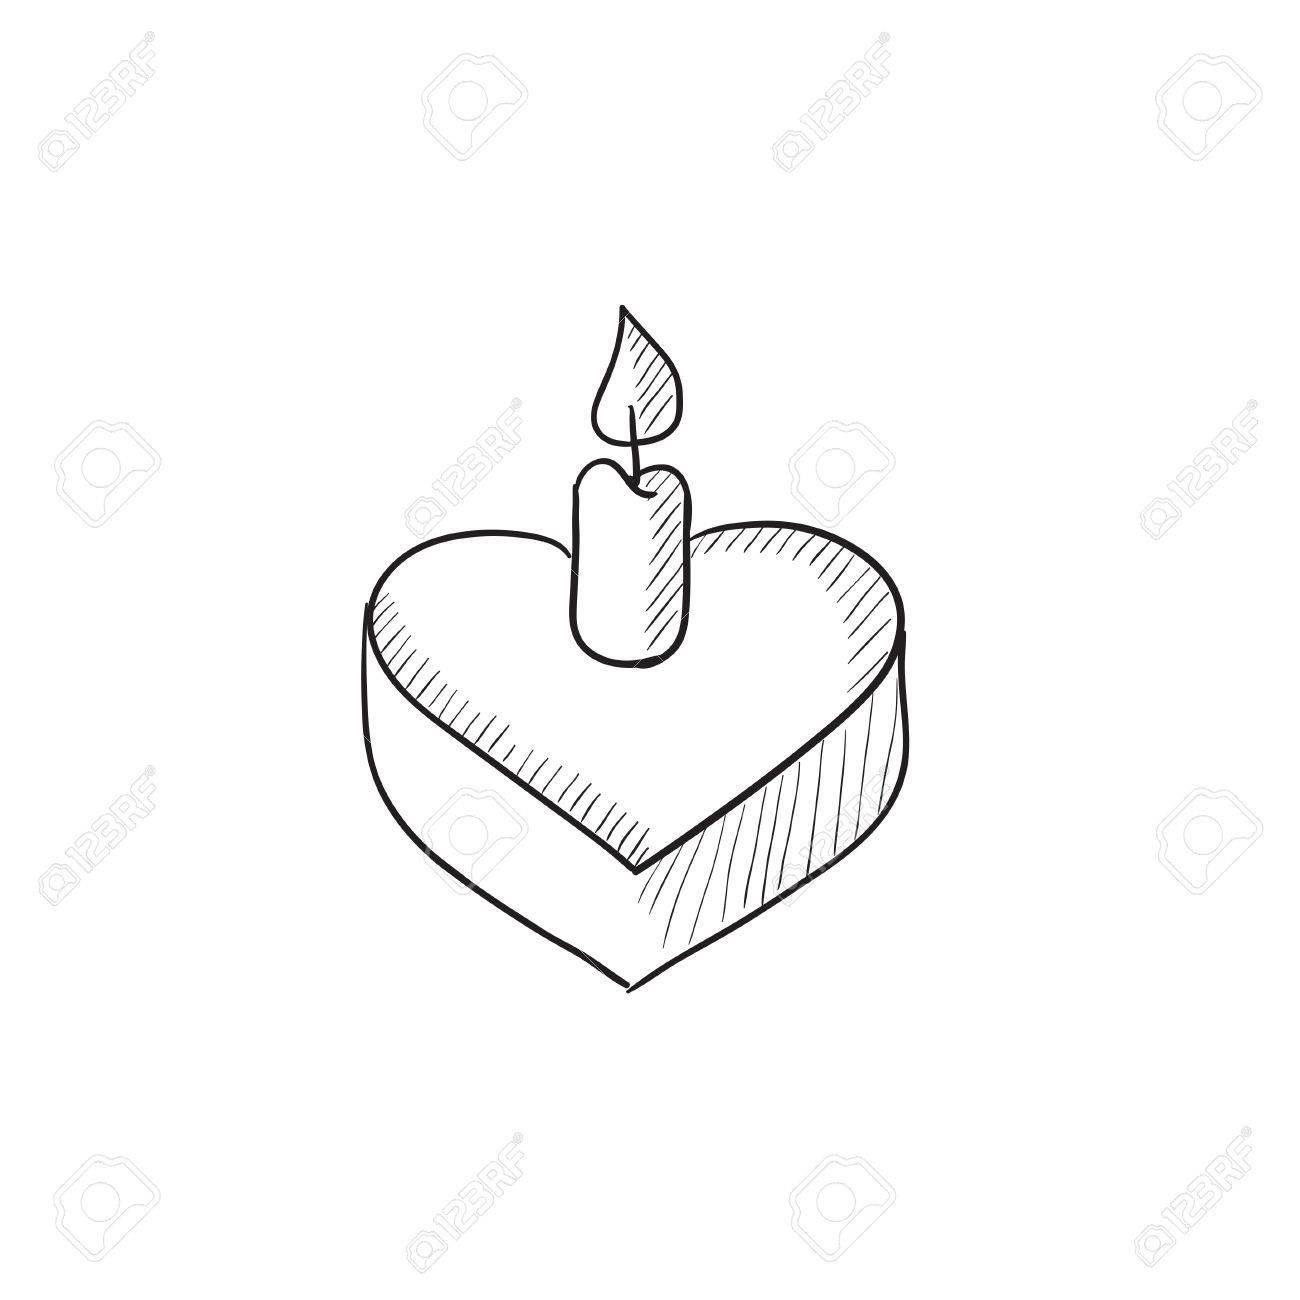 1300x1300 Heart Shaped Cake With Candle Vector Sketch Icon Isolated